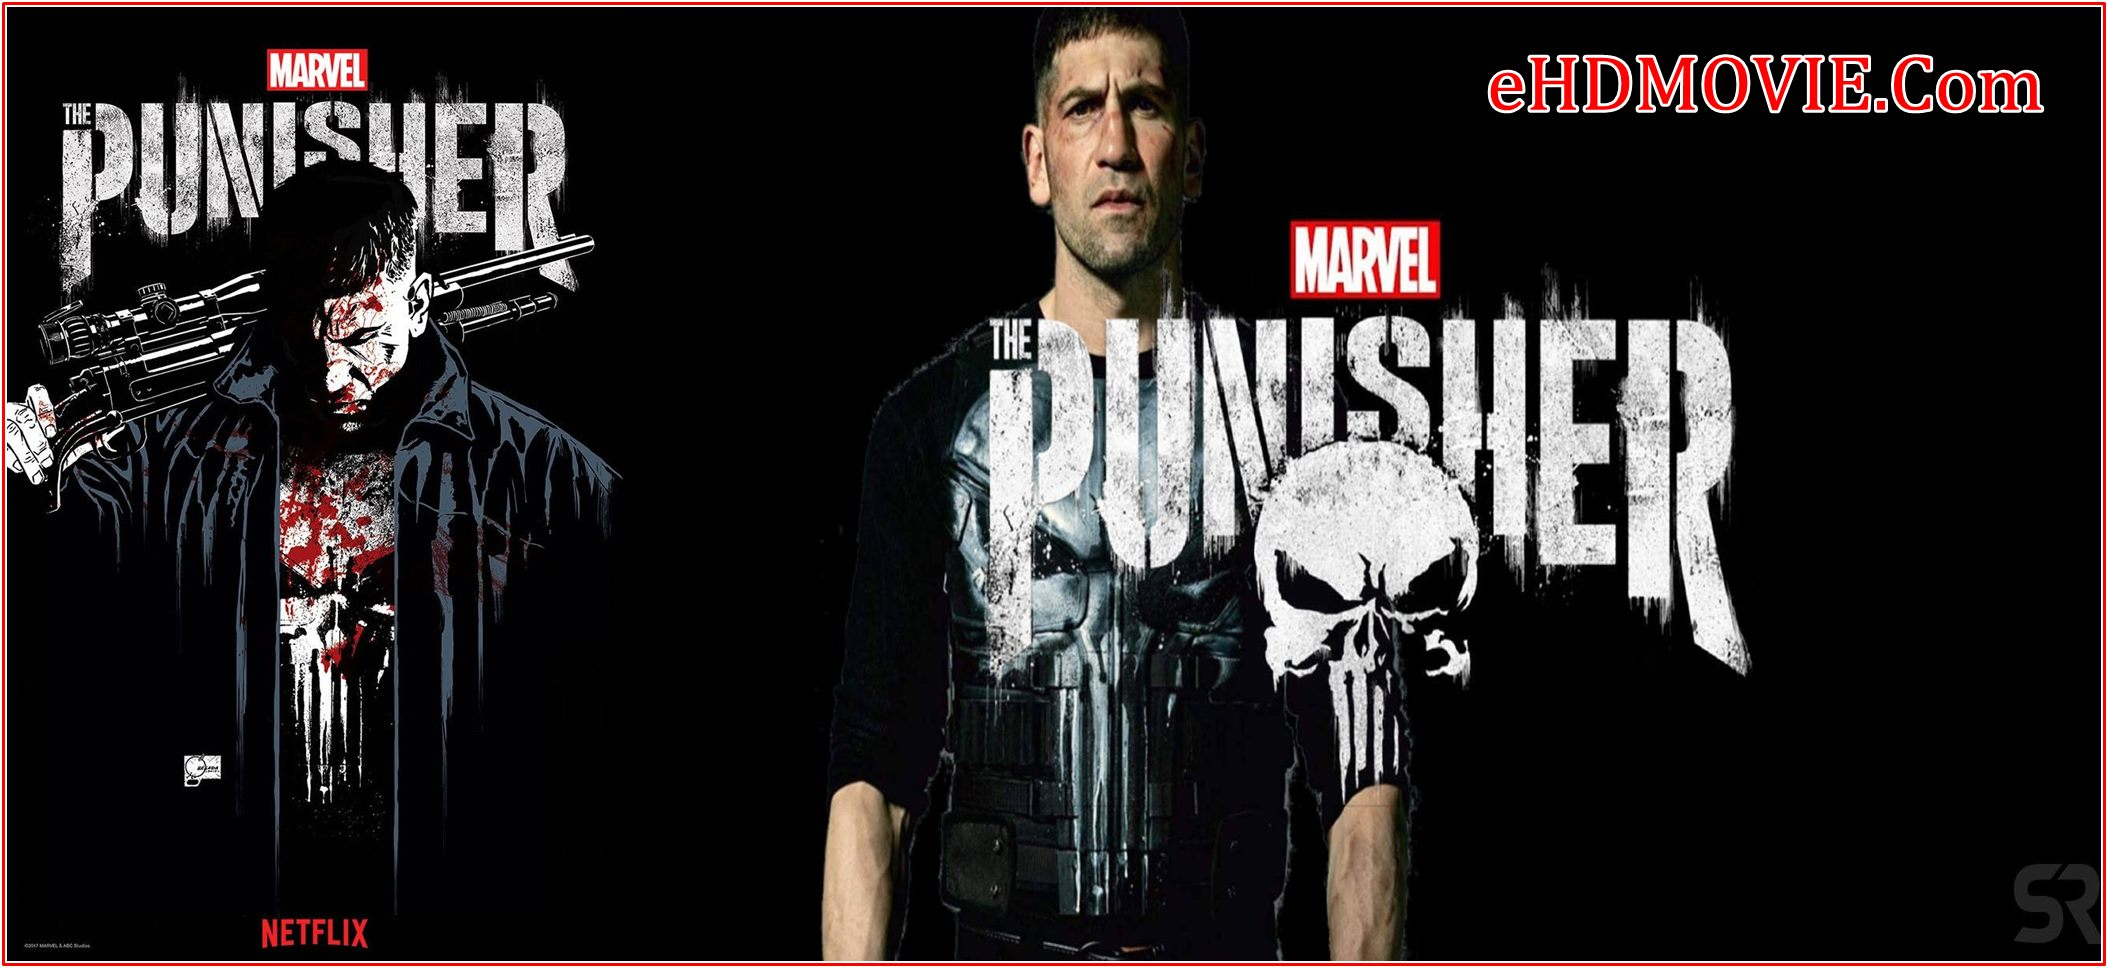 The Punisher Season 1-2 Complete English BRRip 480p & 720p